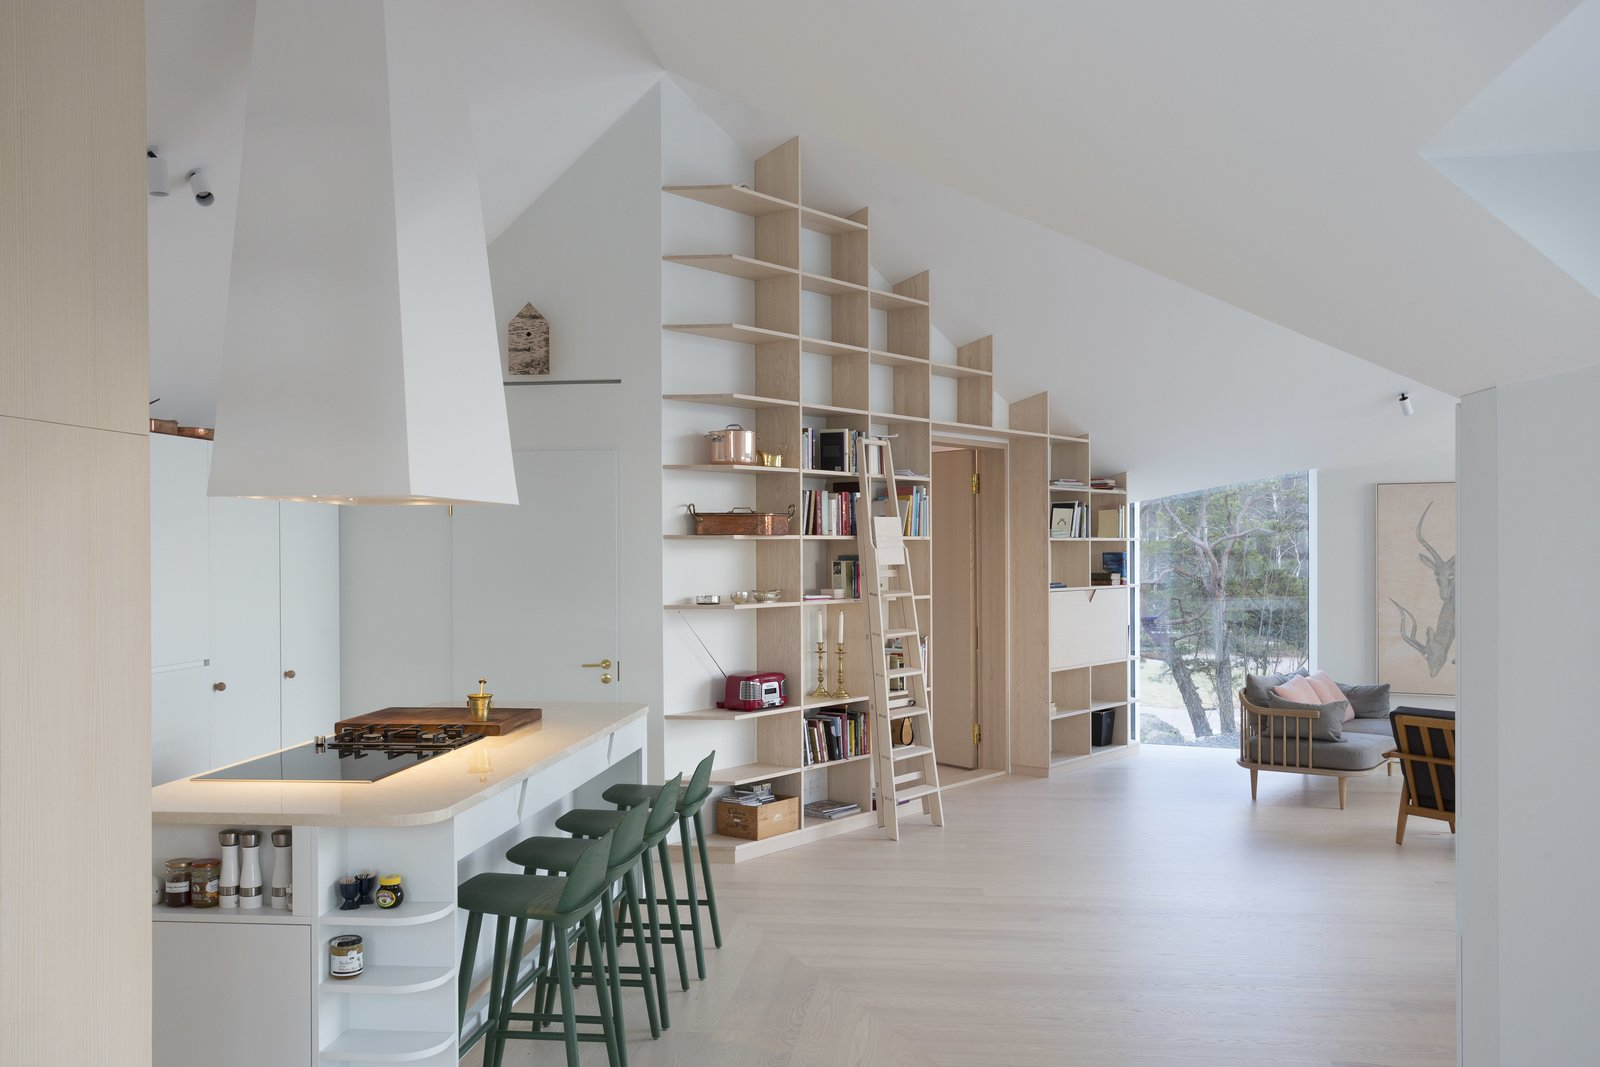 Tagged: Living Room, Bookcase, and Light Hardwood Floor. A Modern Finnish Villa That Grows Out of a Seaside Cliff - Photo 8 of 12